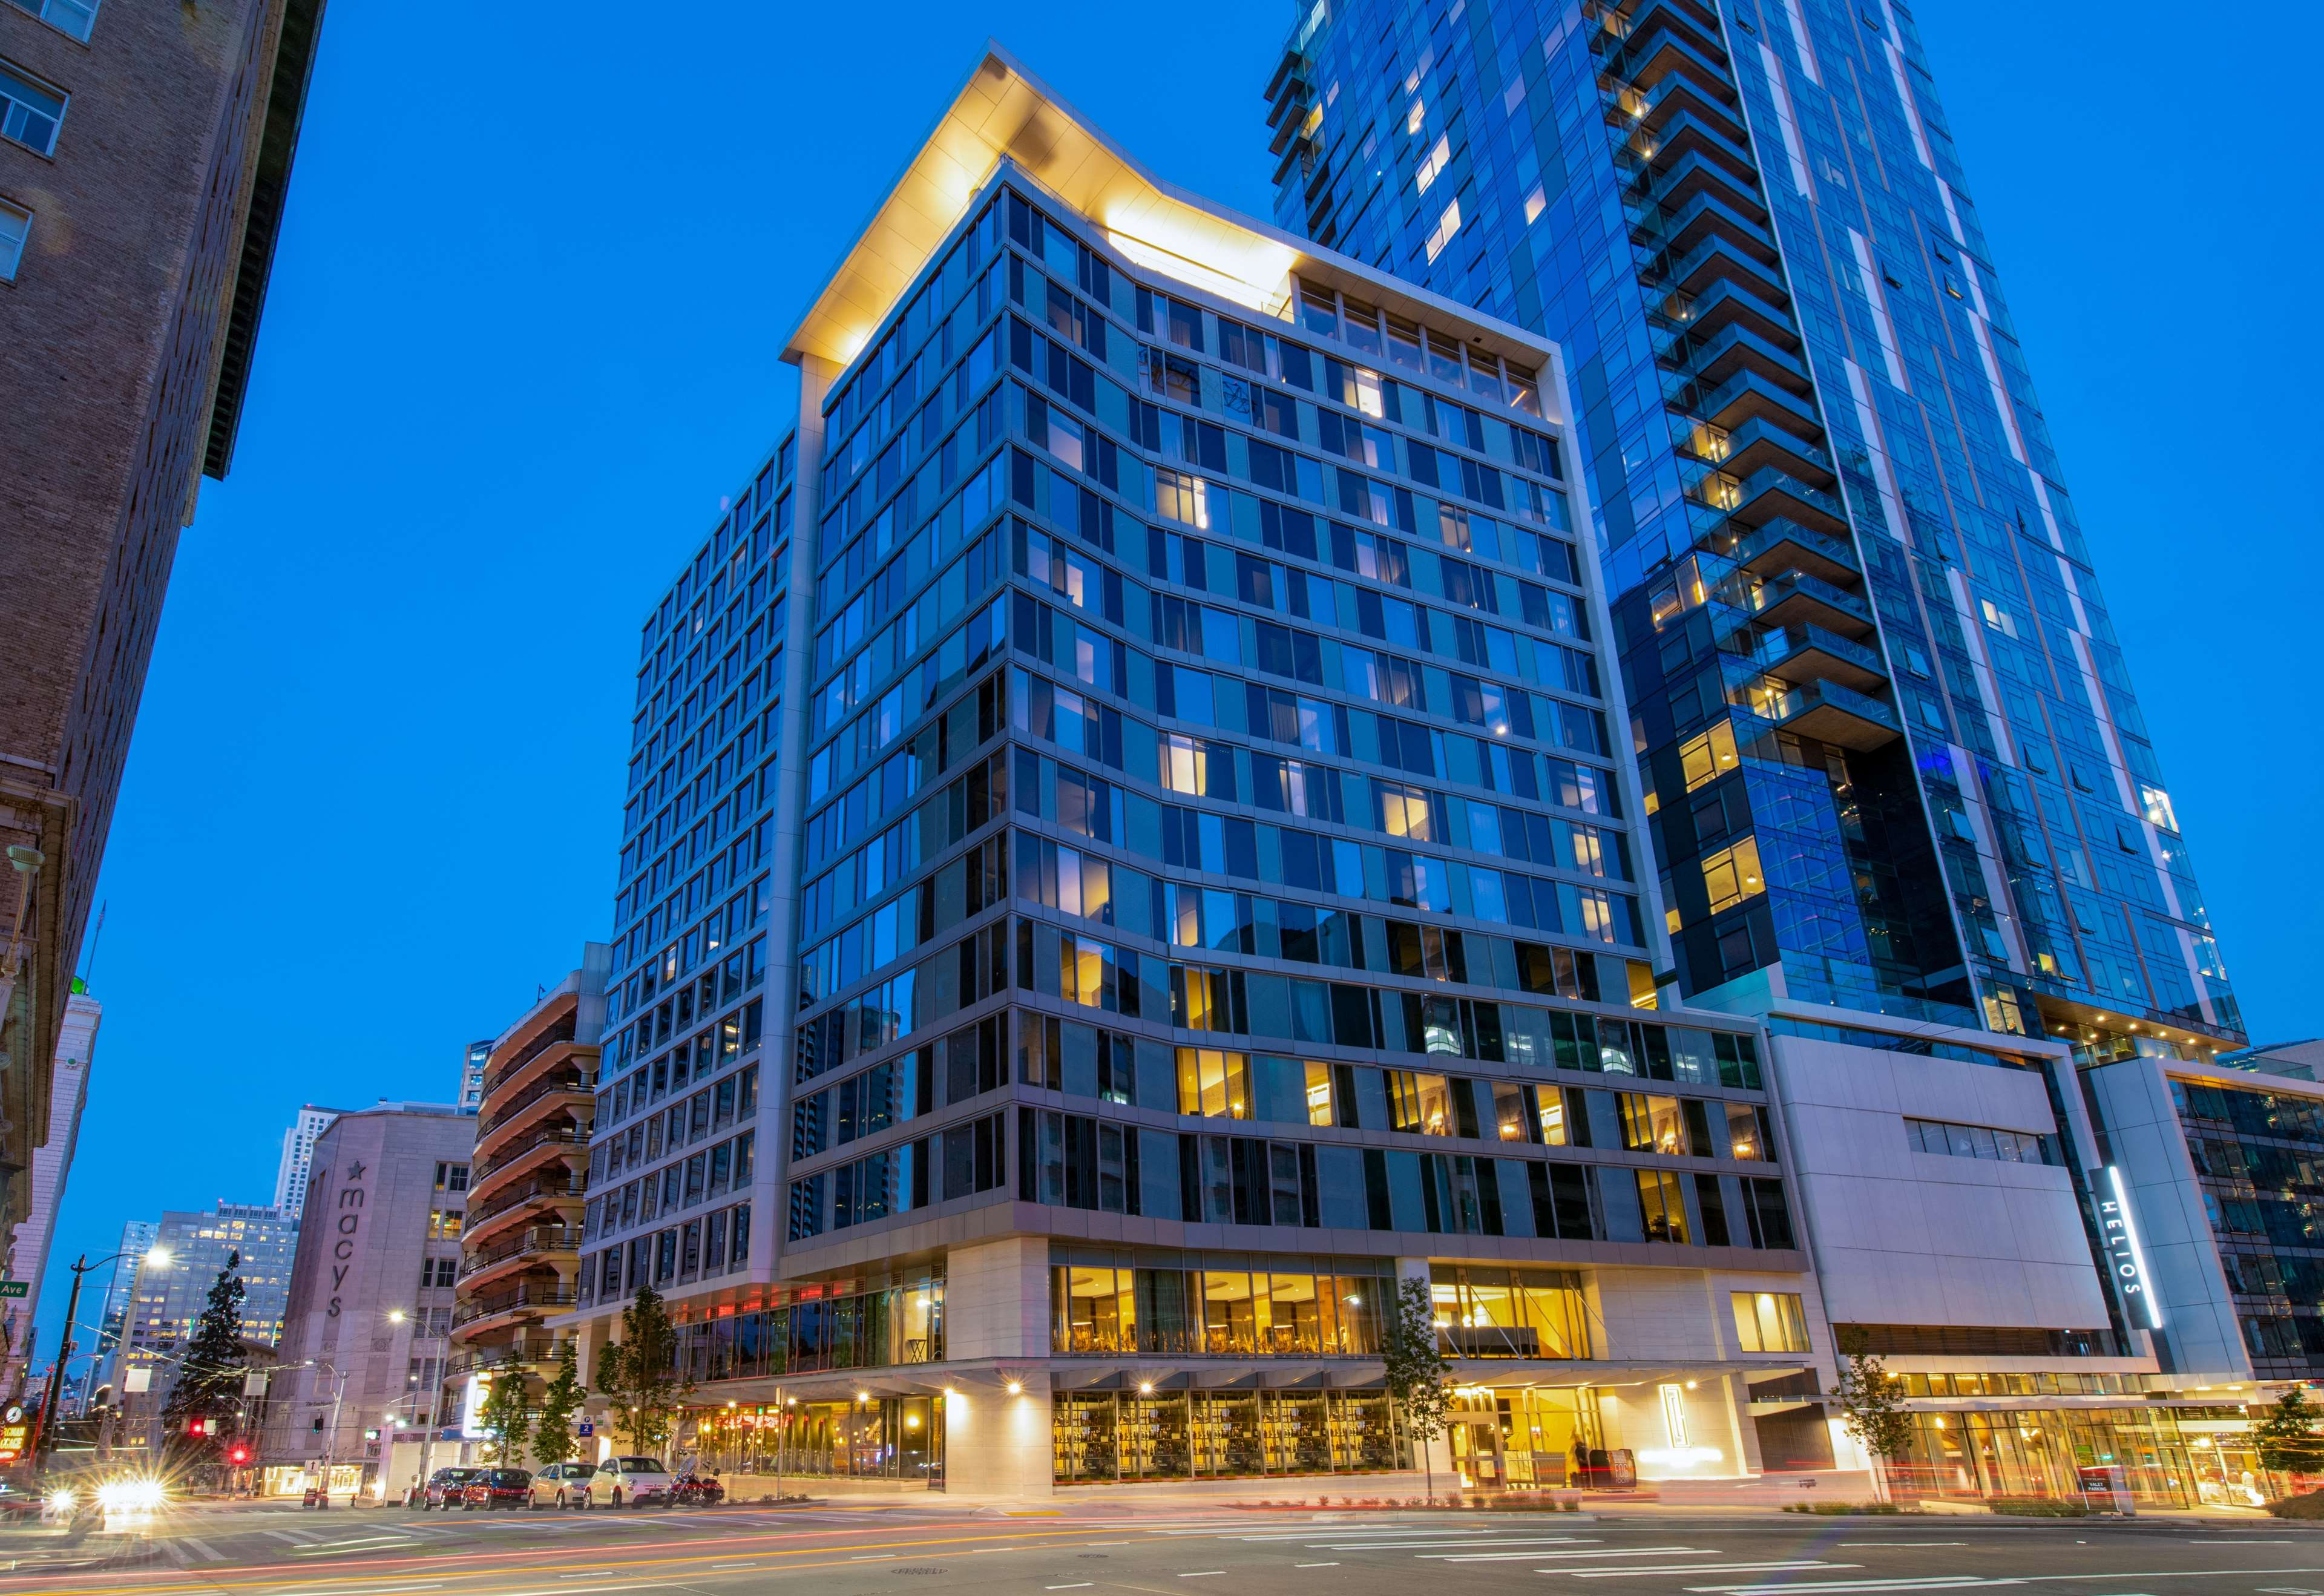 The Charter Hotel Seattle, Curio Collection by Hilton image 1